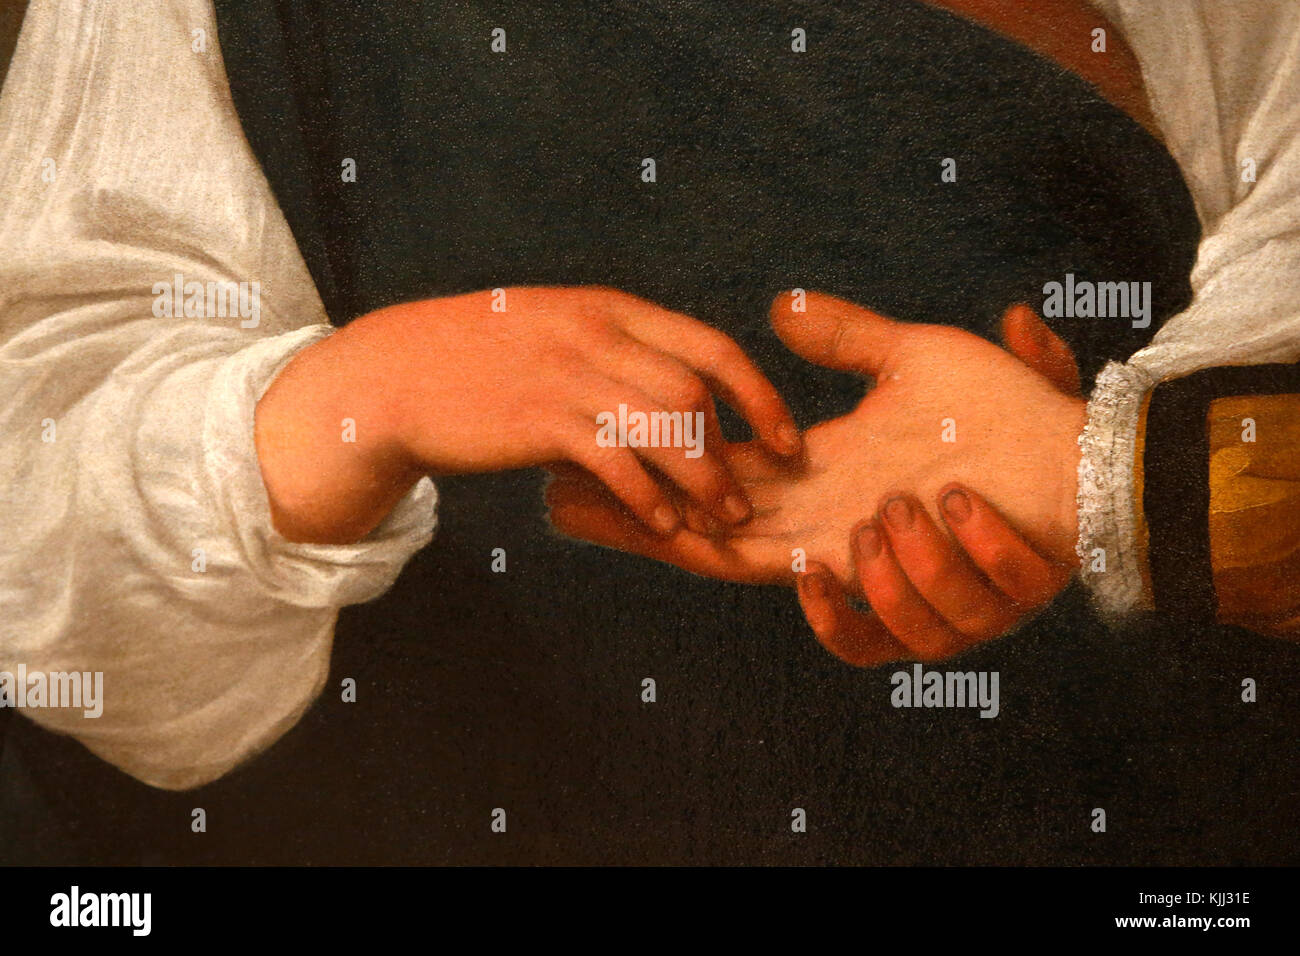 Capitoline museum, Rome. Caravaggio, The Fortune Teller, oil on canvas, about 1595. Detail.  Italy. - Stock Image